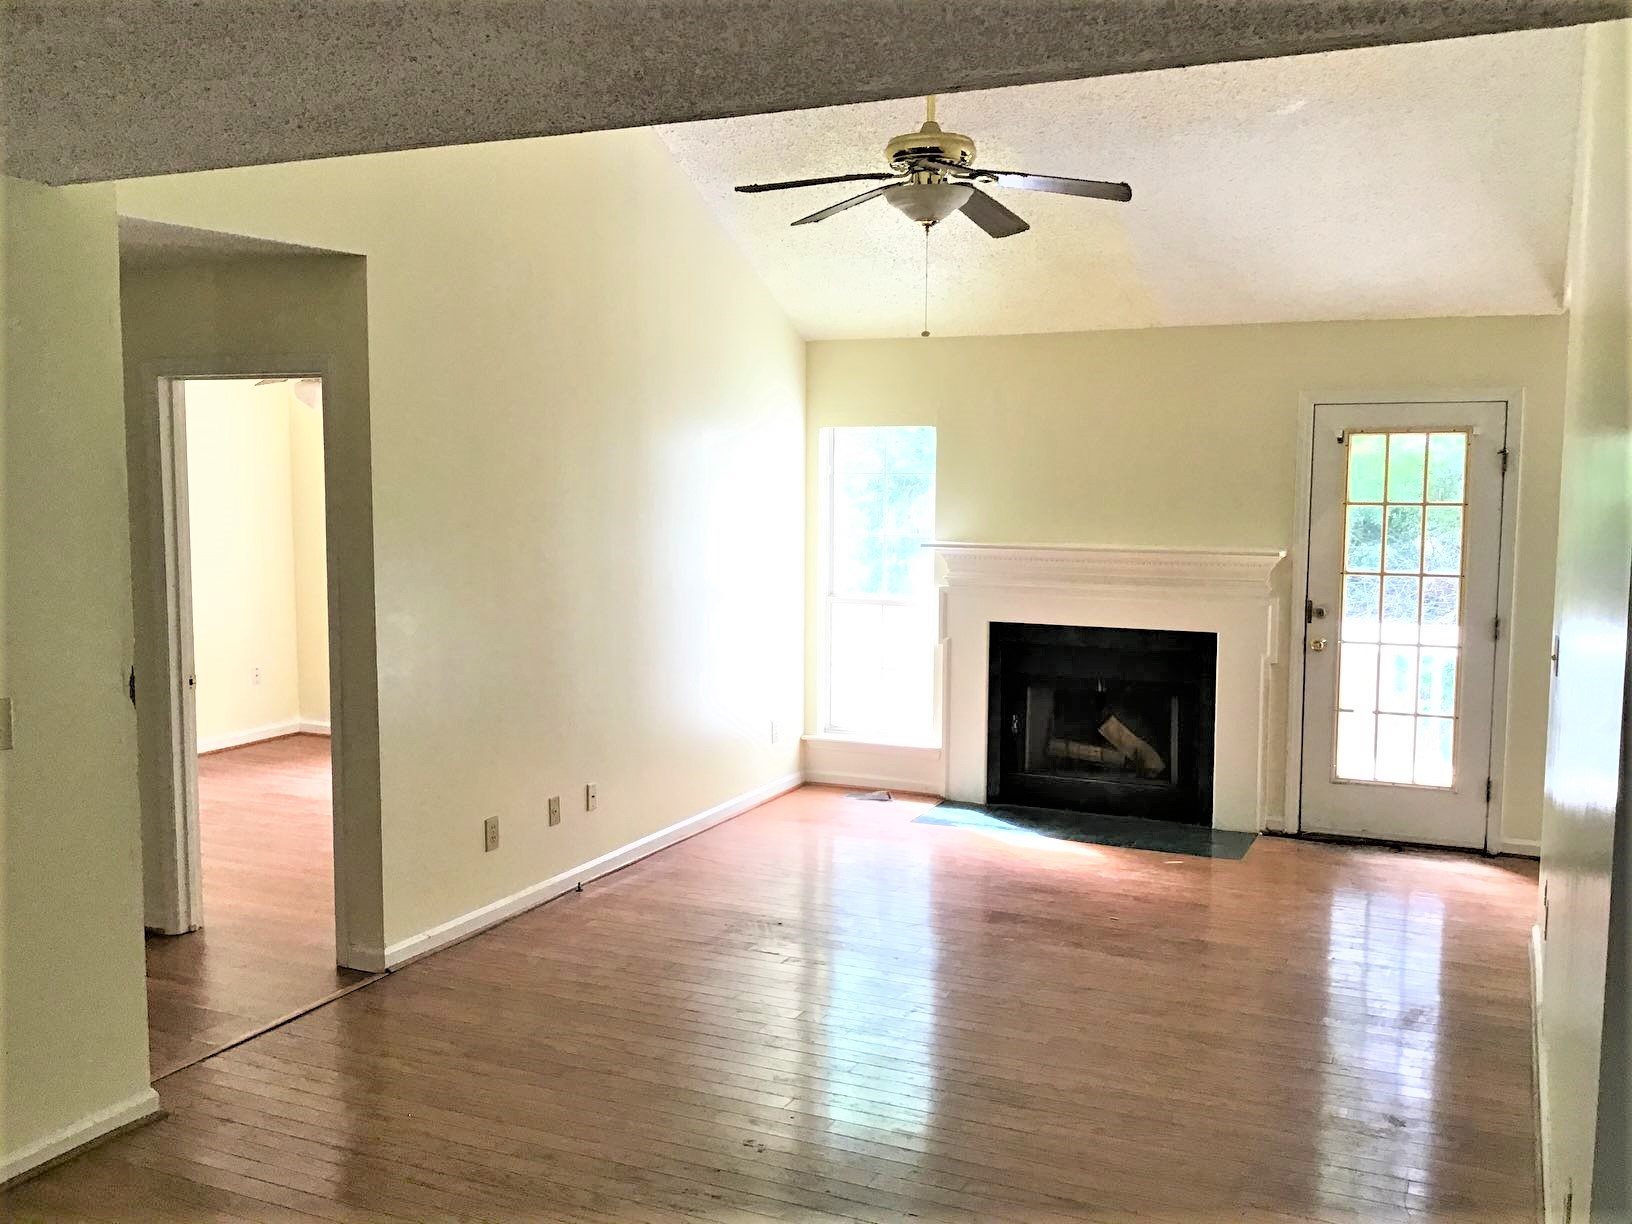 34 Dovecreek Drive, Columbia, South Carolina 29229, 3 Bedrooms Bedrooms, ,2.5 BathroomsBathrooms,Home,For Rent,Dovecreek Drive,1377